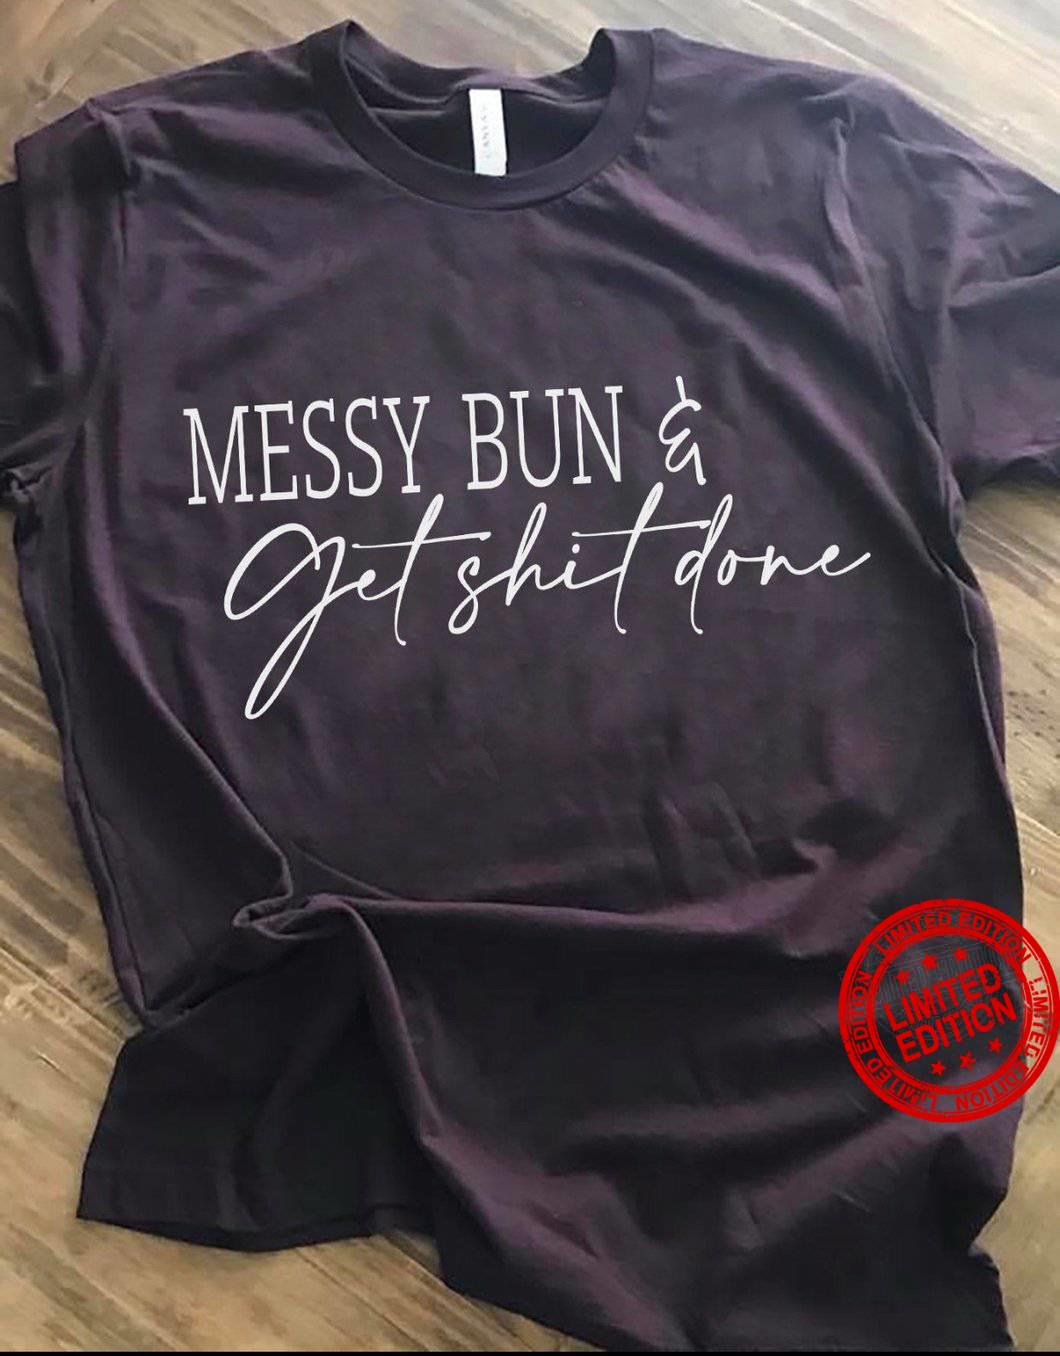 Messy Bun Get Shit Done Shirt